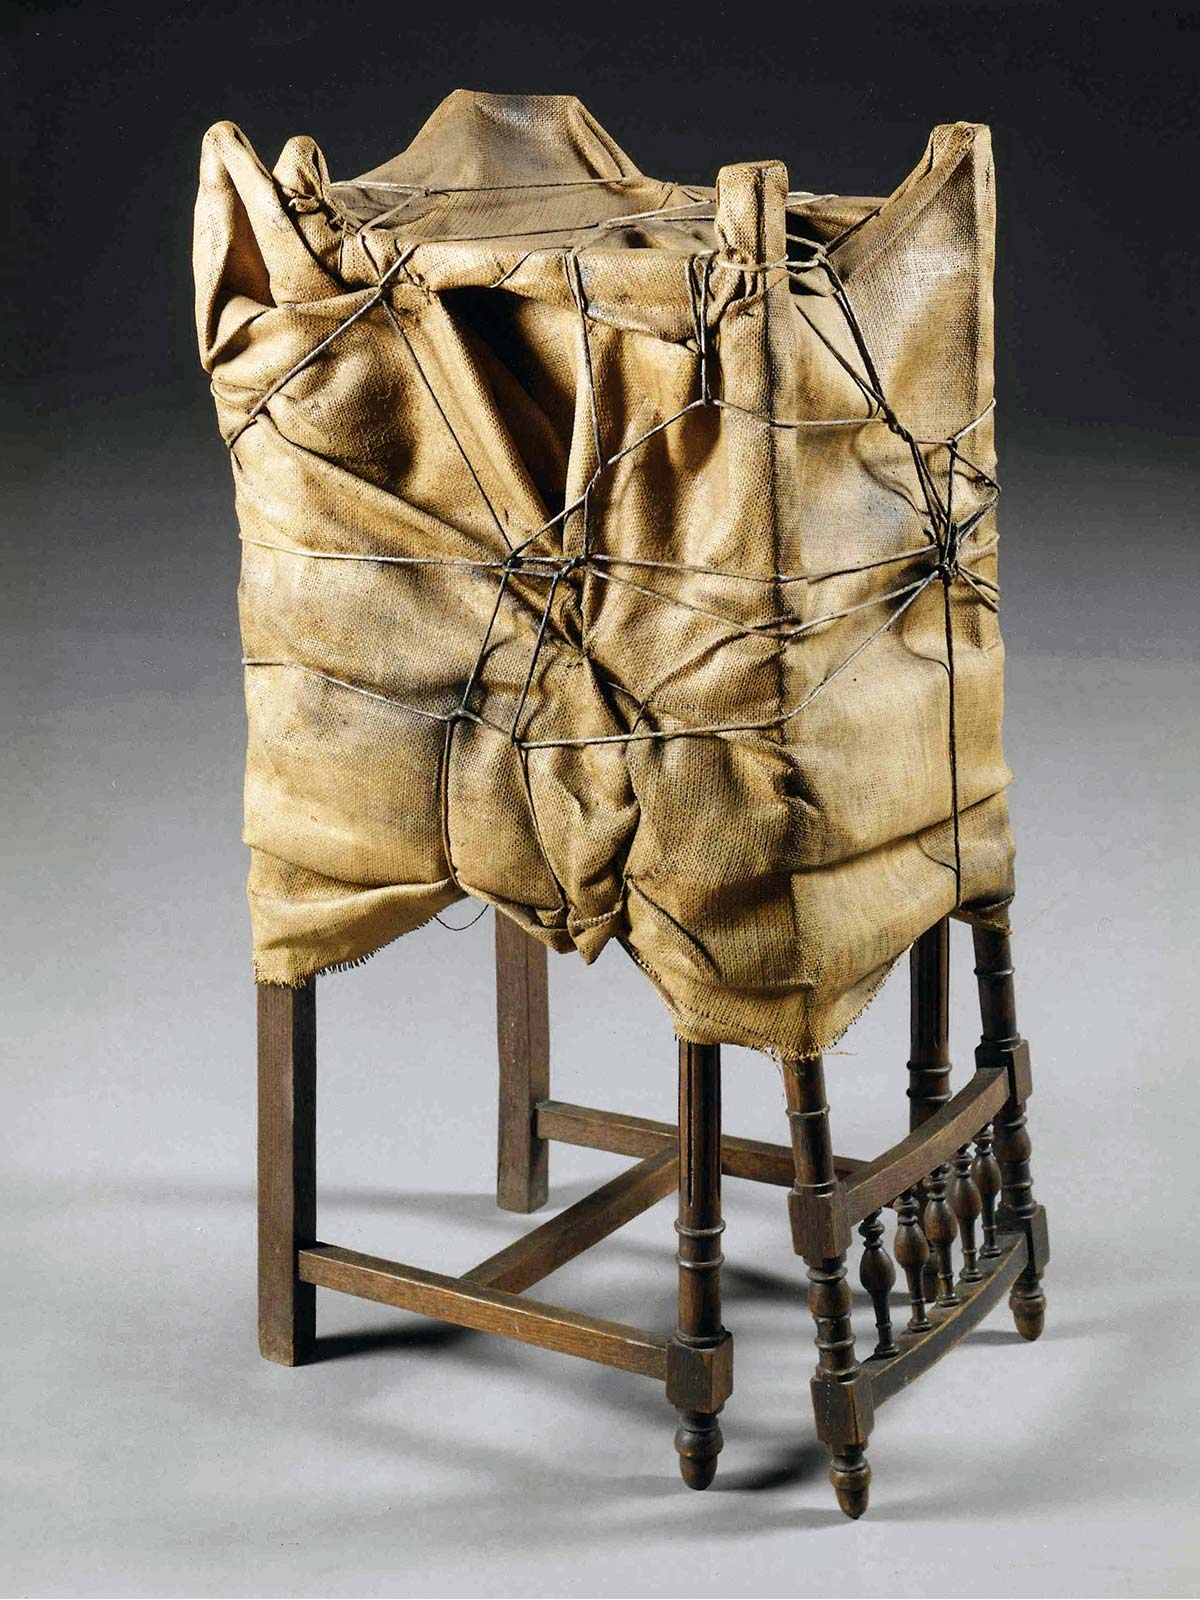 Two Wrapped Chairs by Christo - Photo © Wolfgang Volz